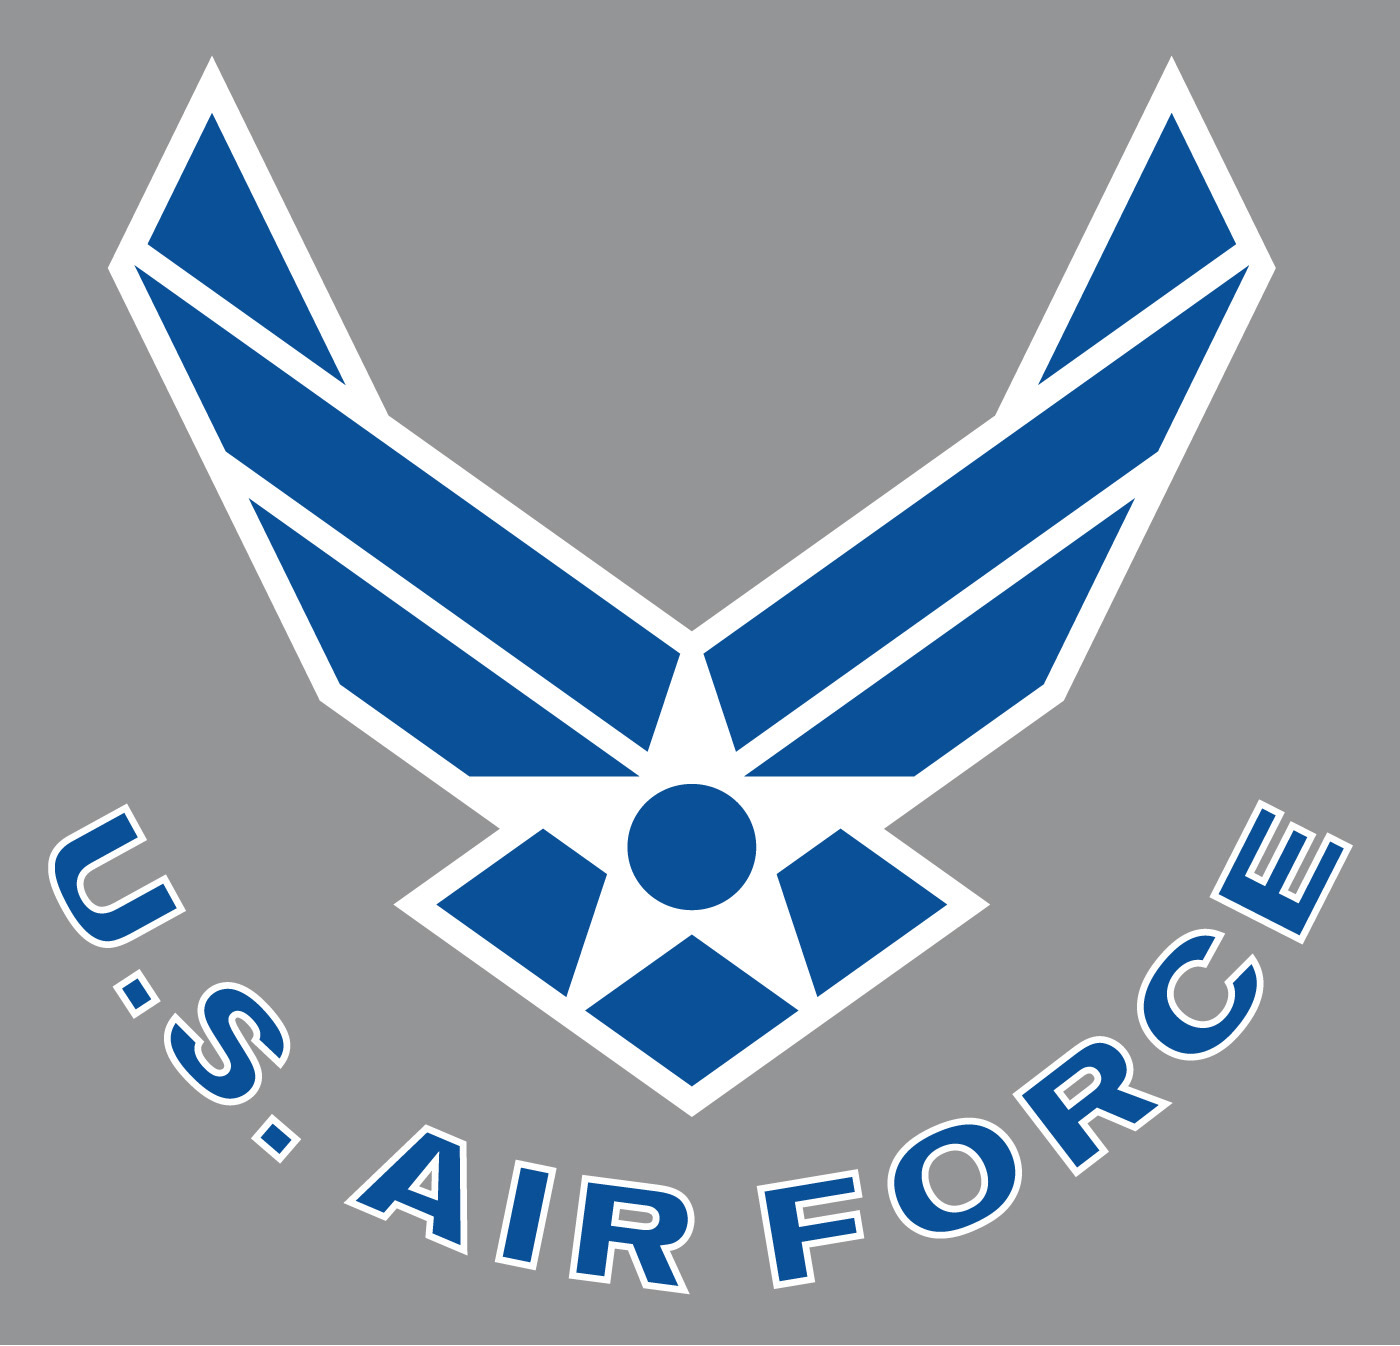 Art air force symbol curved text blue with white outline on gray background the voltagebd Images